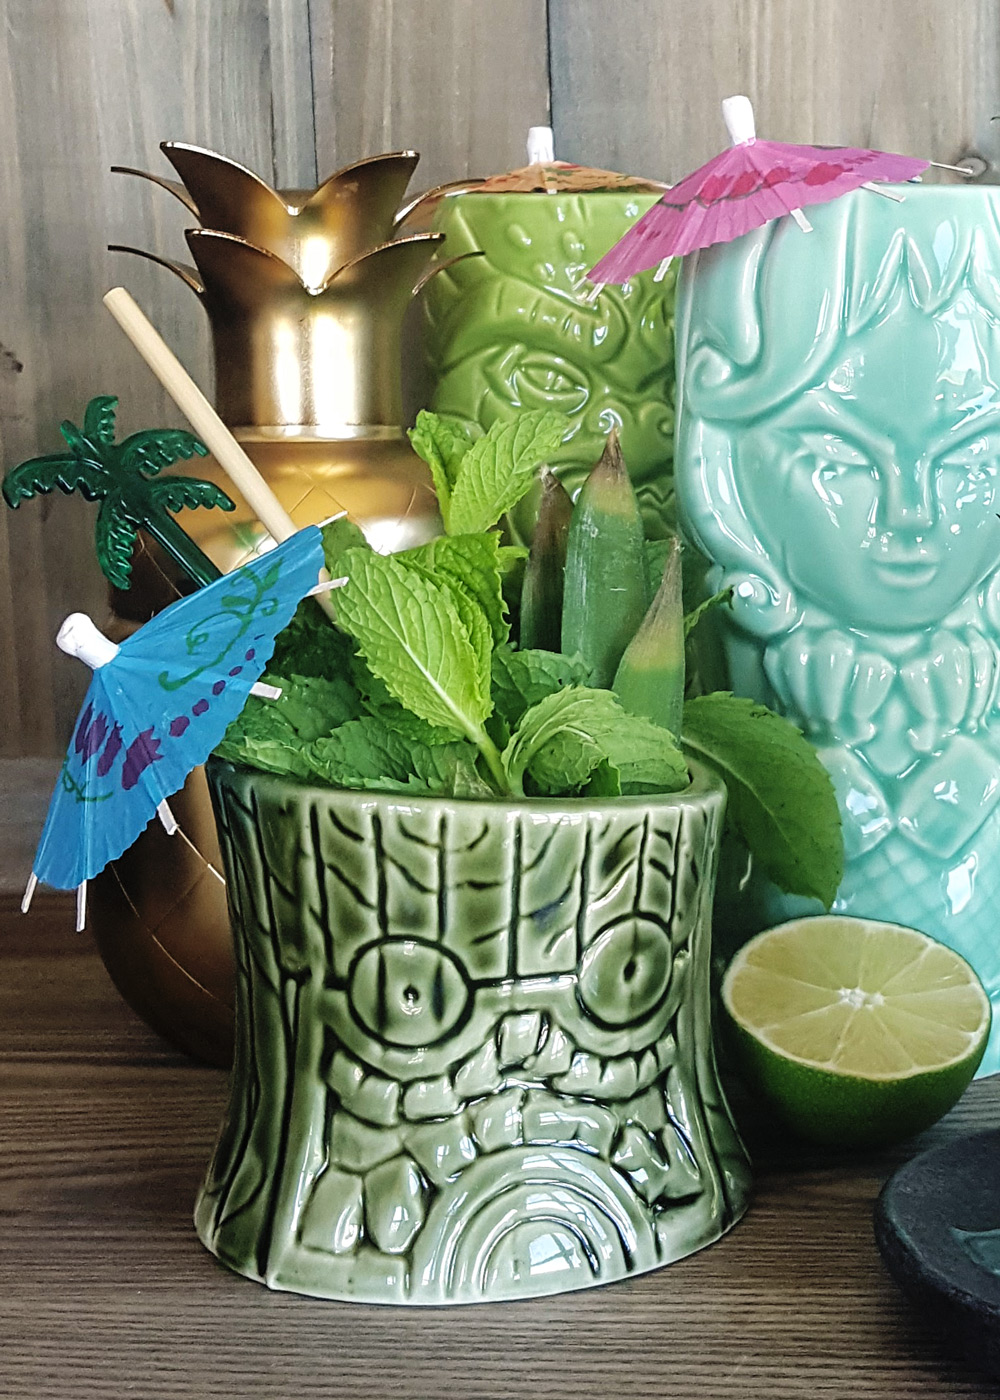 Everything You Need to Build Your Own Home Tiki Bar